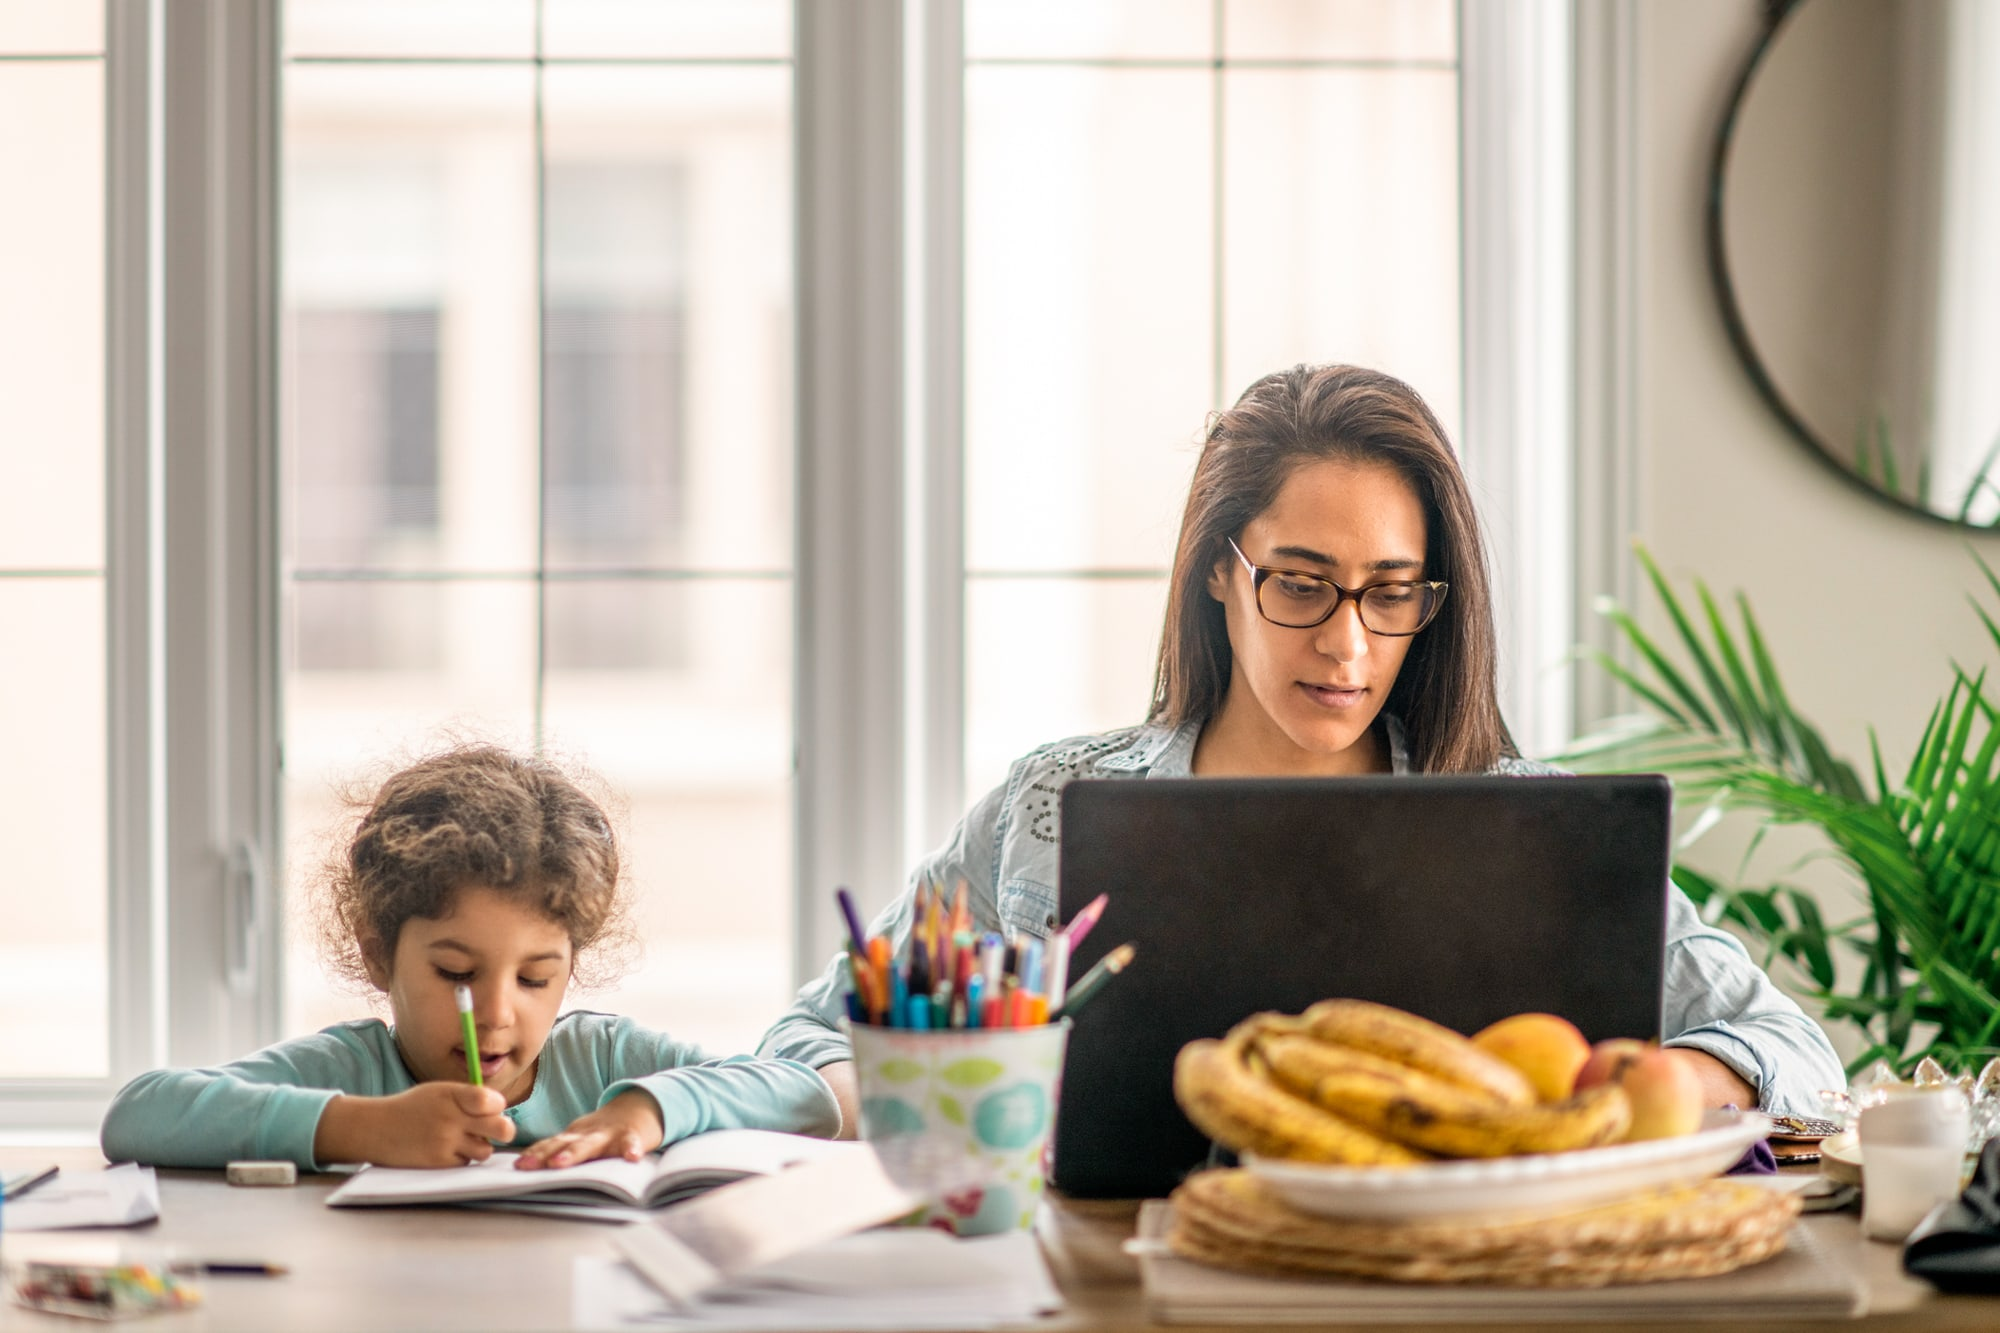 A mother tries to work from home with her child doing homework beside her